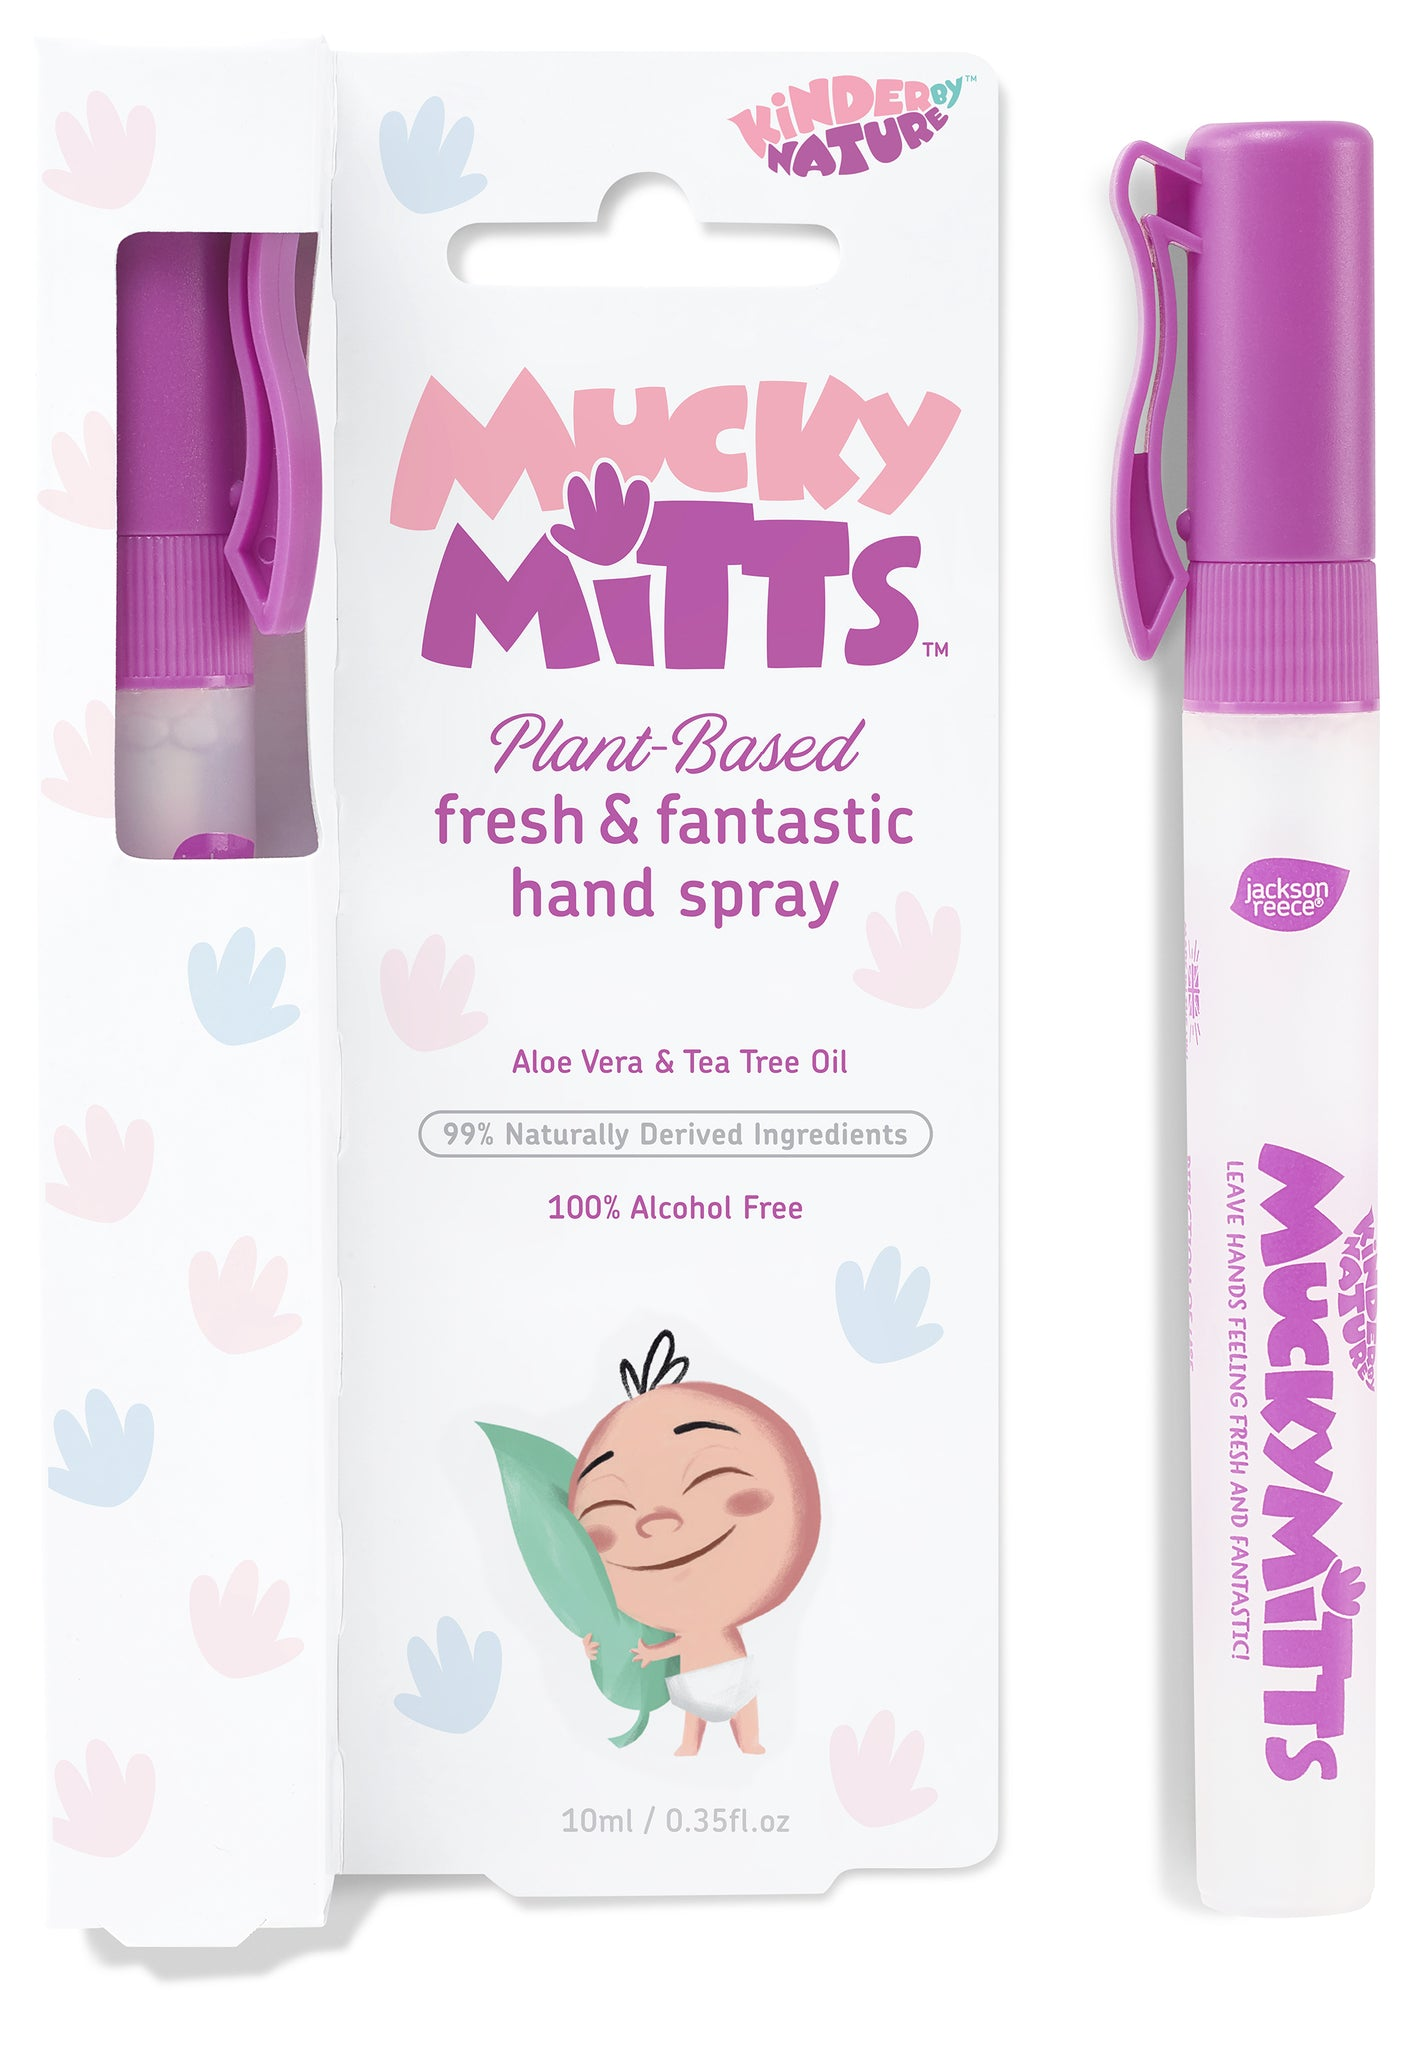 Mucky Mitts Spray